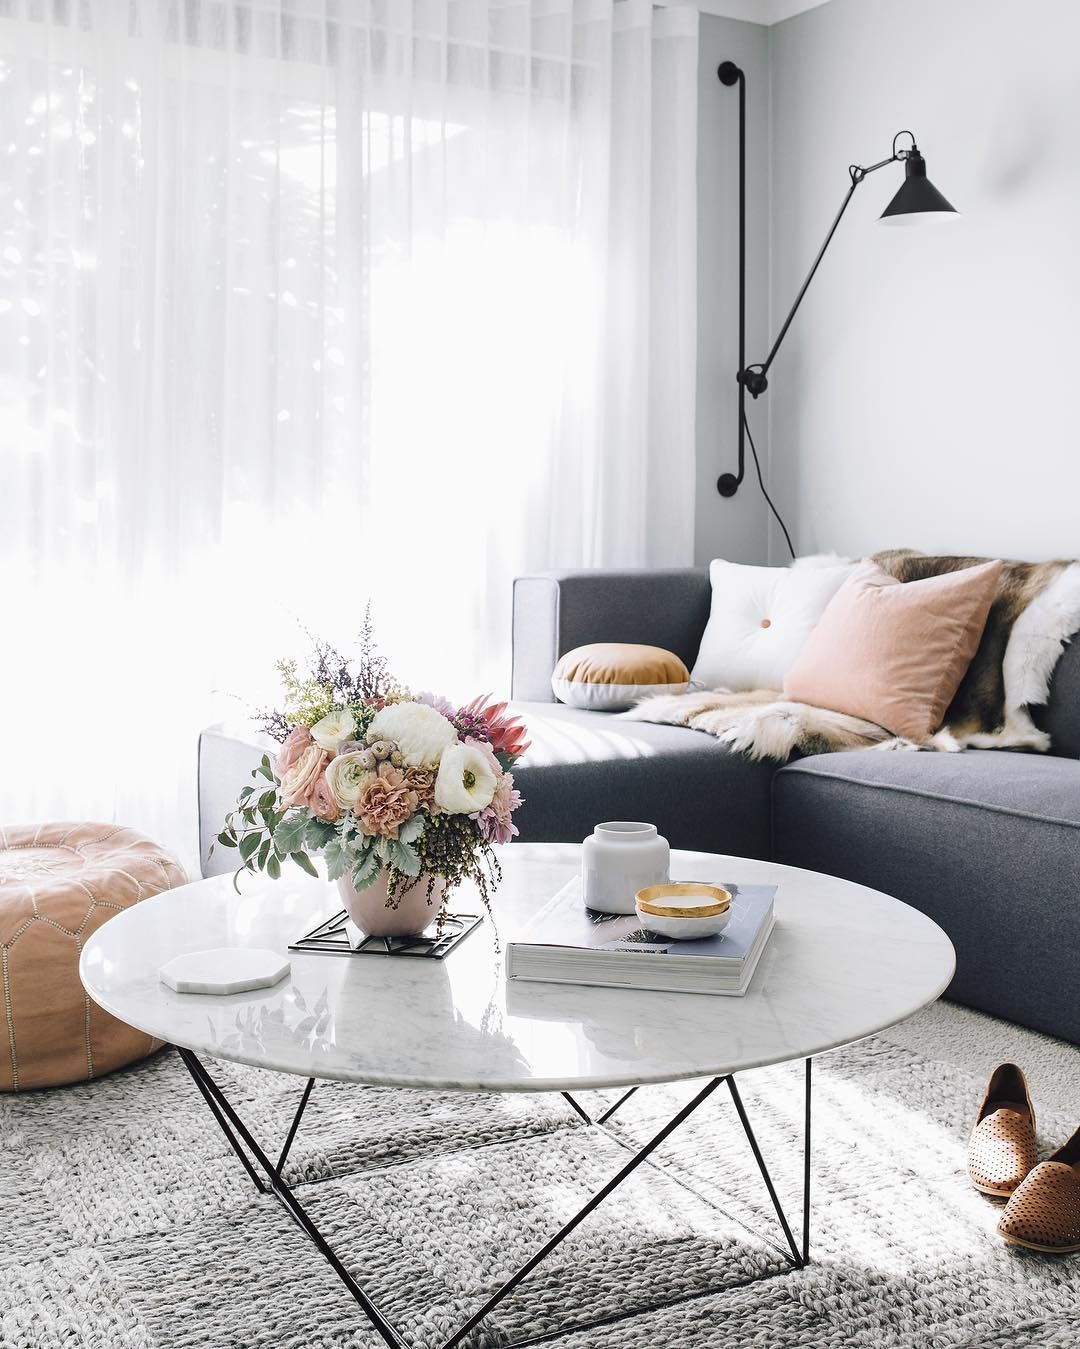 Marble Top Coffee Table Perth: Perth WA Stylist